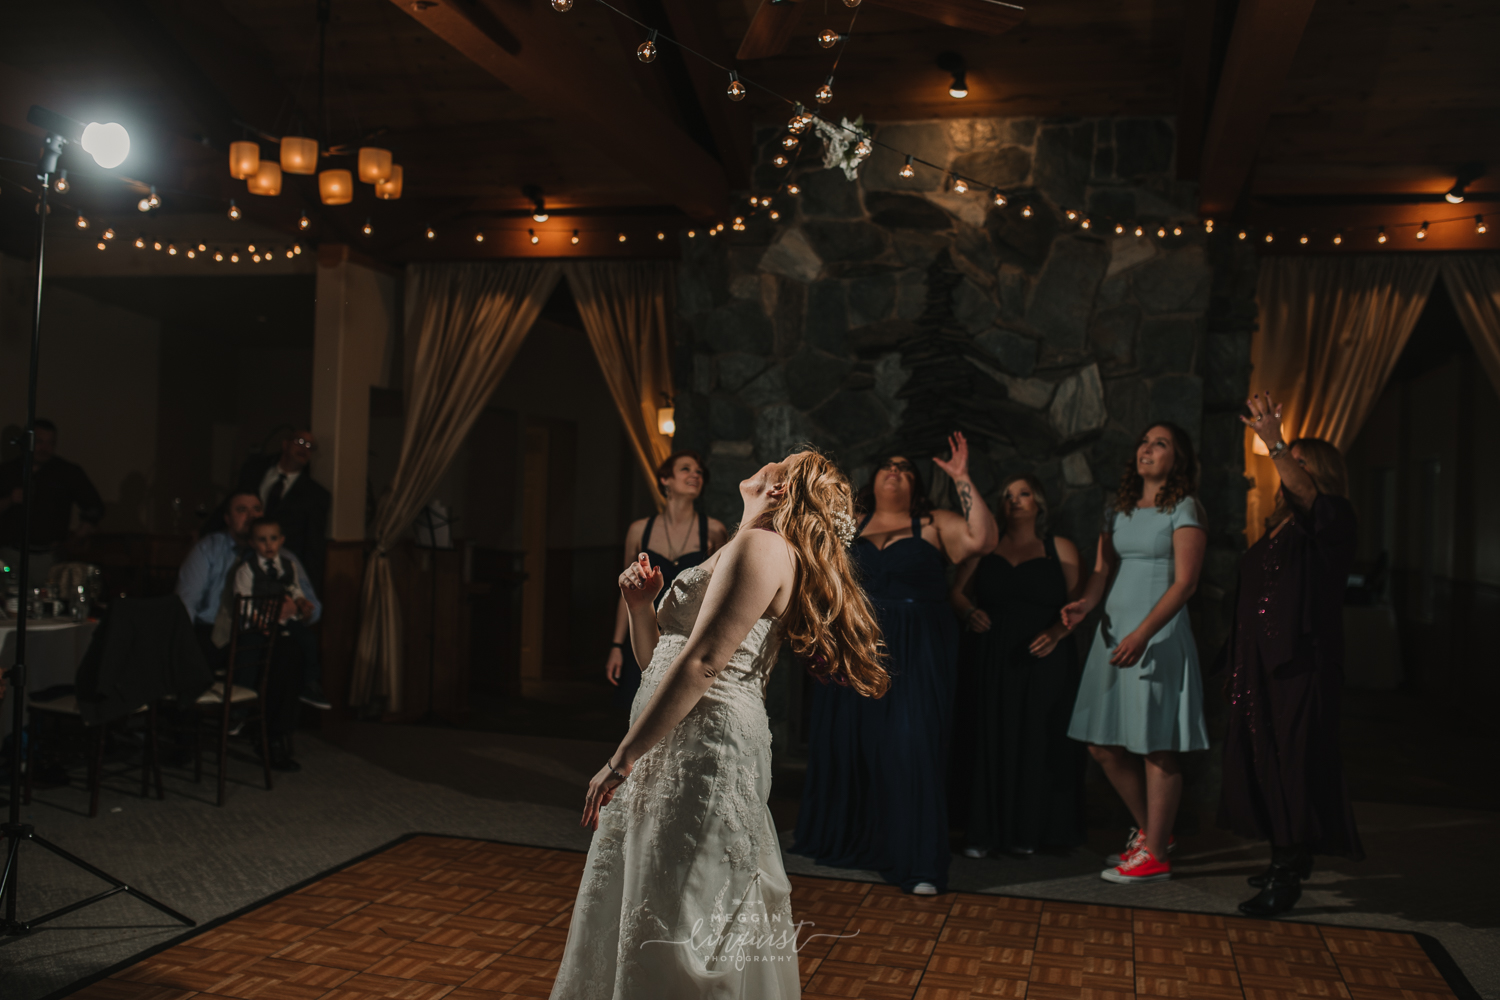 music-themed-winter-wedding-tannenbaum-event-center-reno-lake-tahoe-wedding-photographer-70.jpg